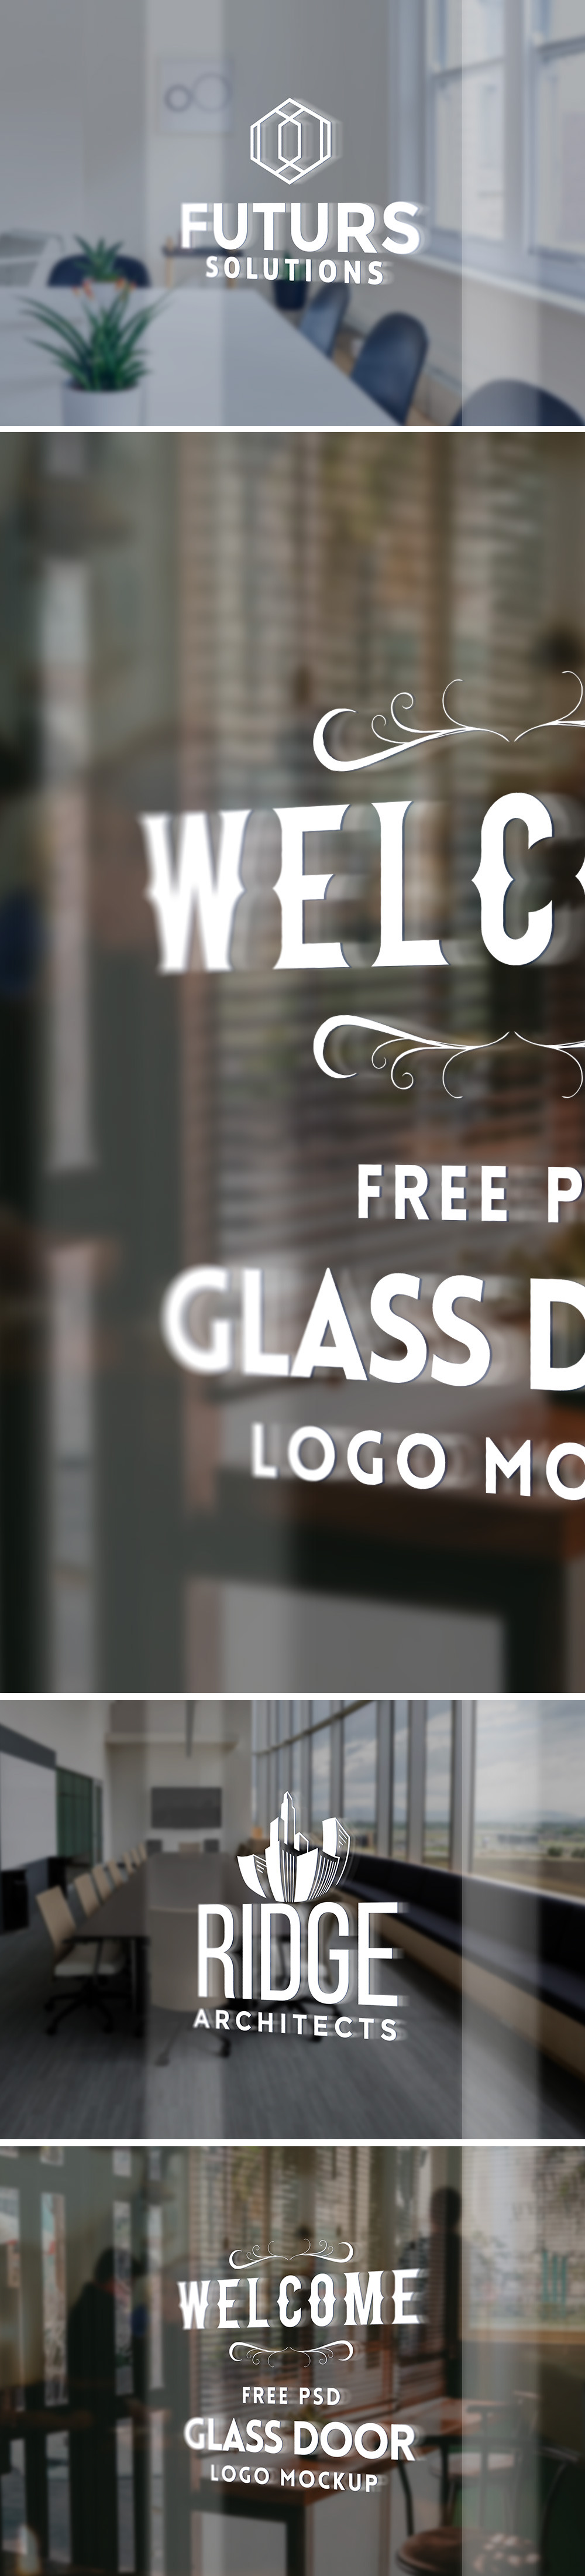 무료 유리문 로고 목업 PSD - Free Glass Door Logo Mockup PSD